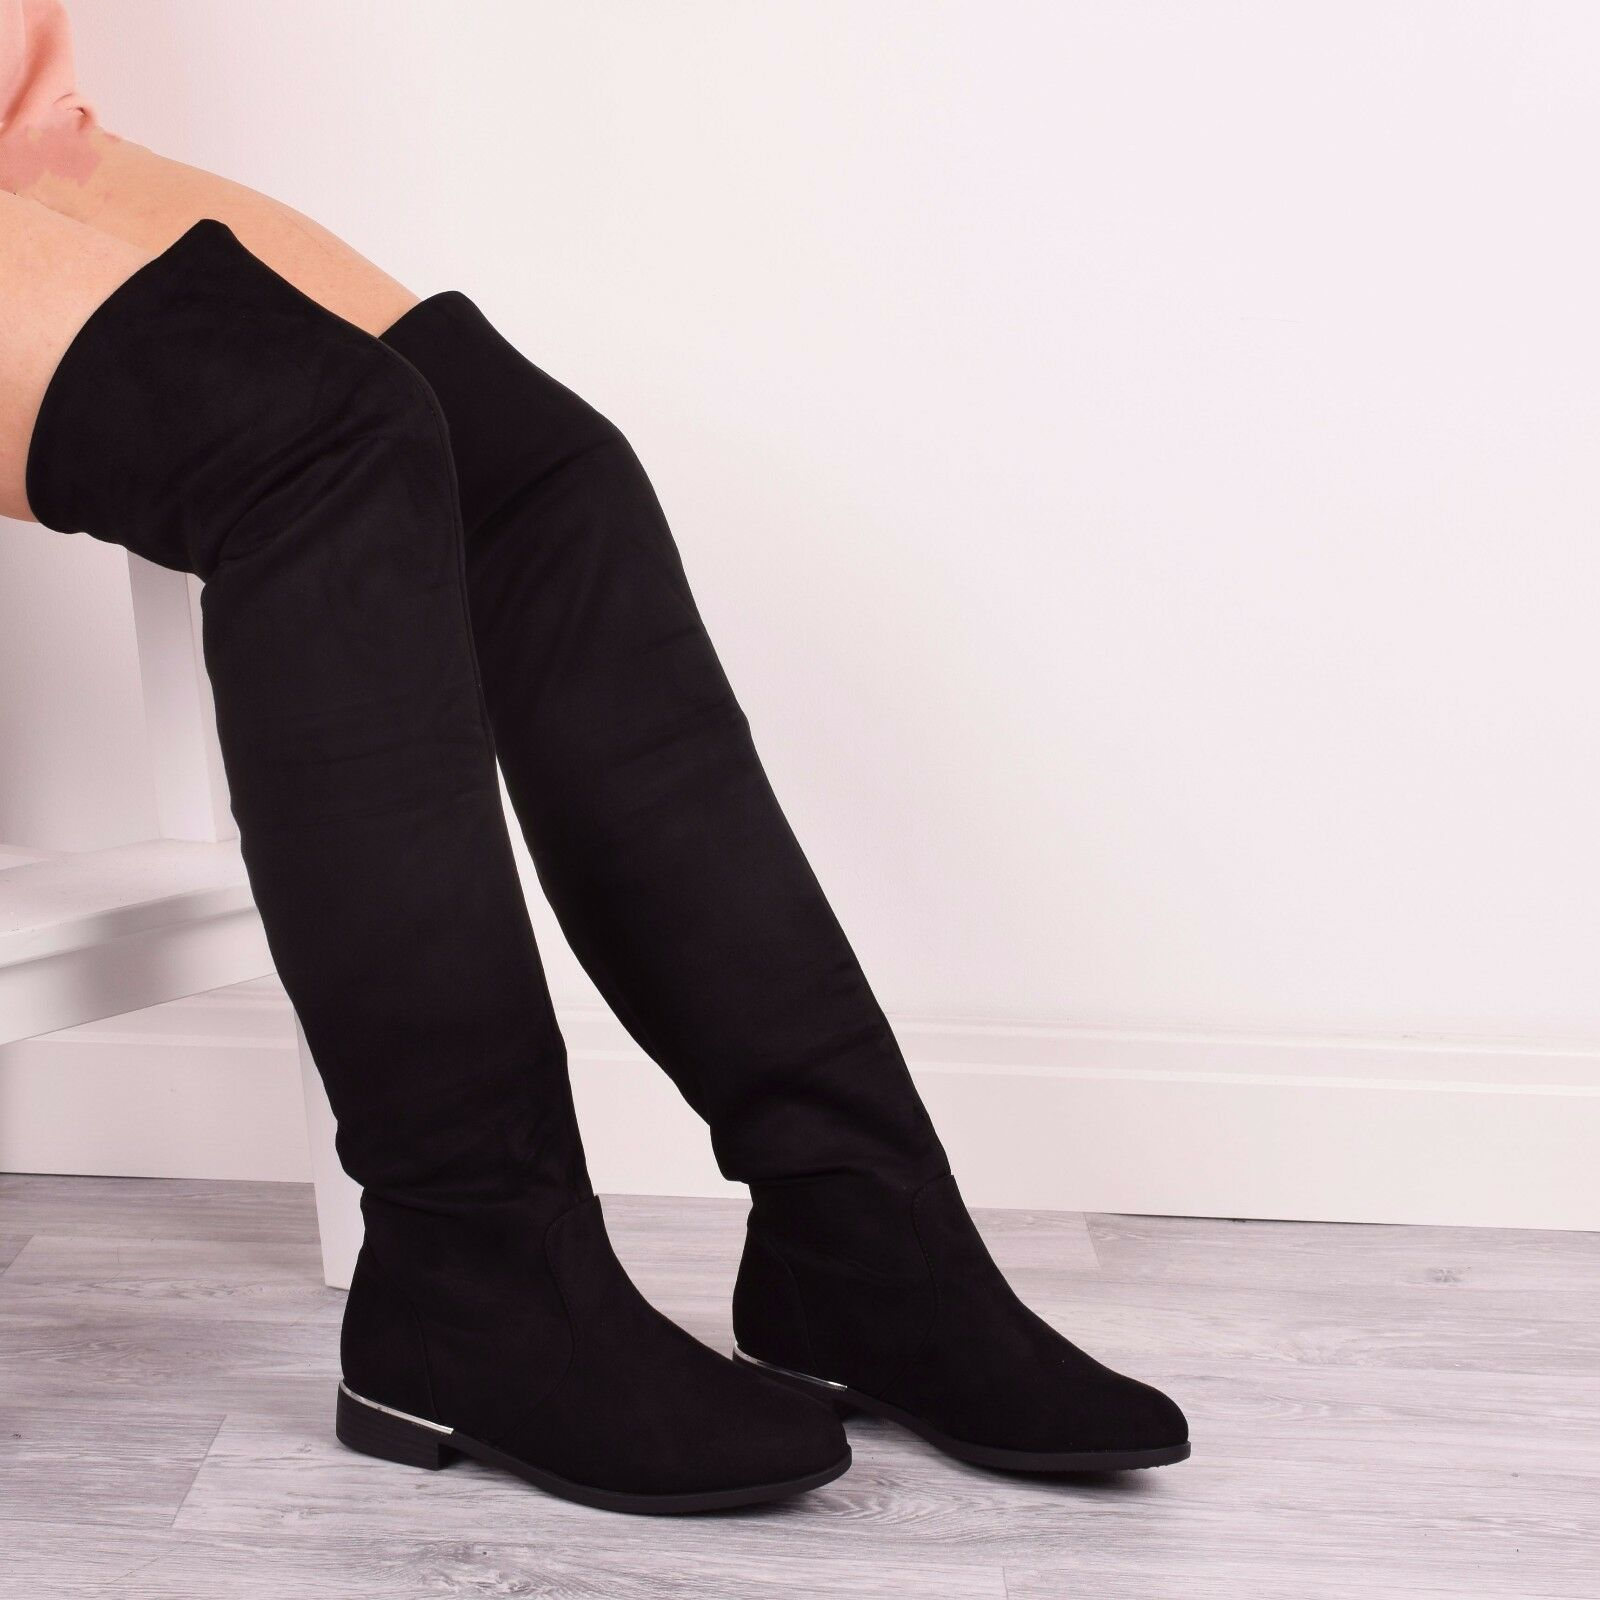 Ladies Womens Flat Boots Thigh High Over The Knee Casual Winter Fashion Size 3-8